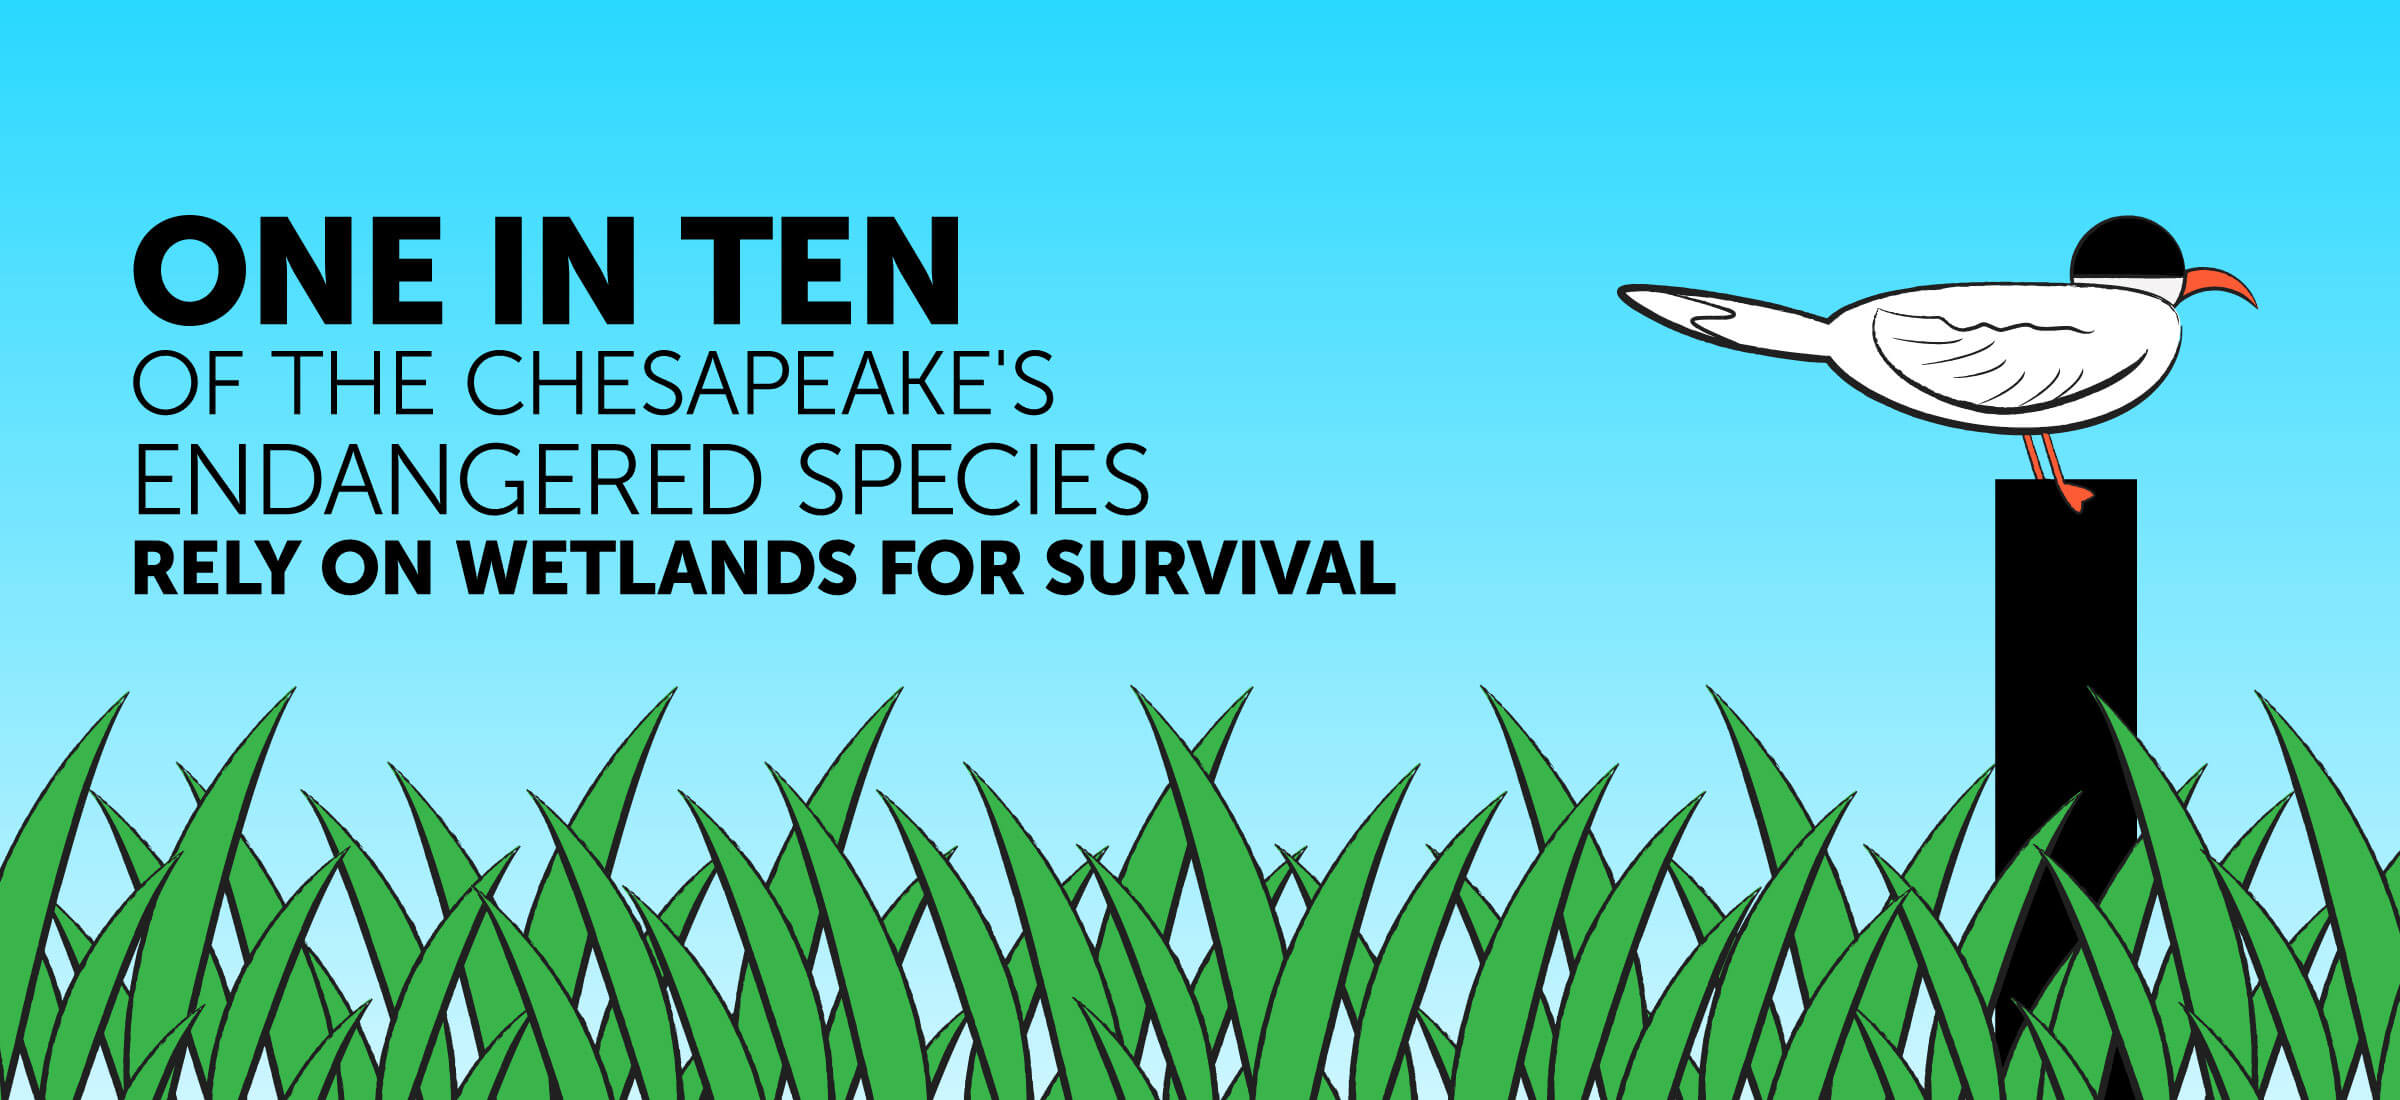 One in ten of the Chesapeake's endangered species rely on wetlands for survival.